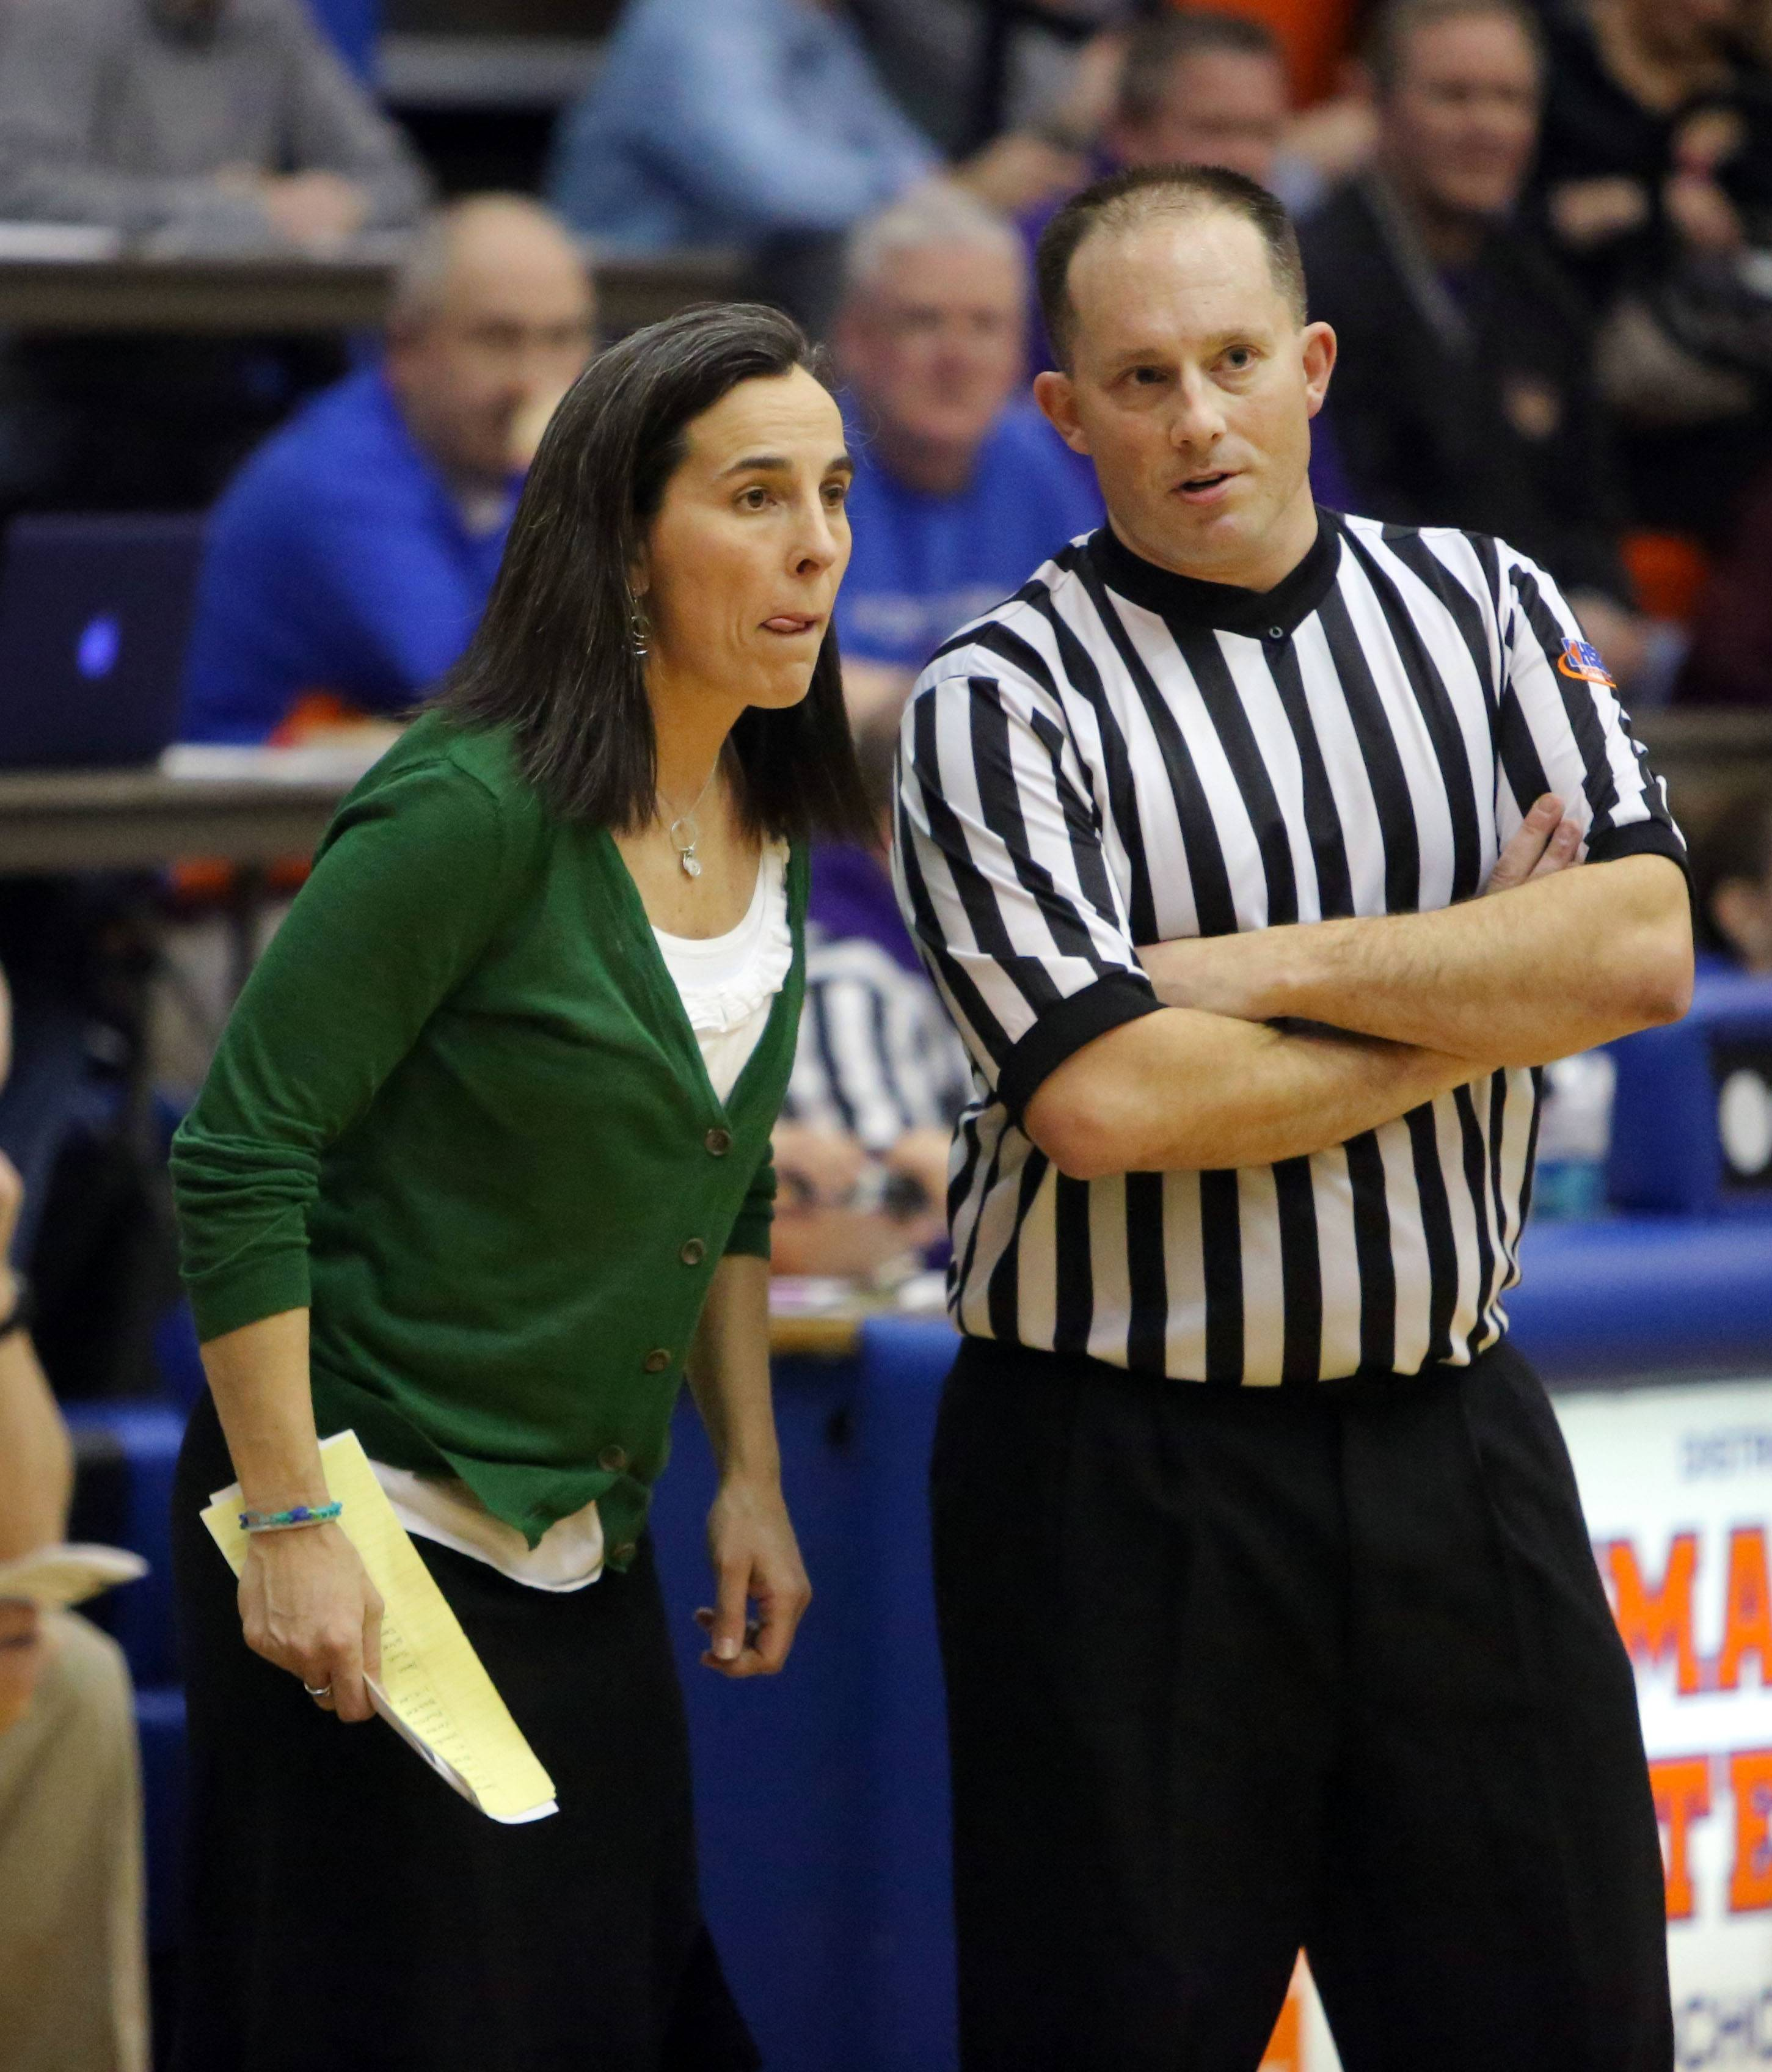 New Trier coach Teri Rodgers talks to a referee during the Class 4A supersectional at Hoffman Estates on Monday.